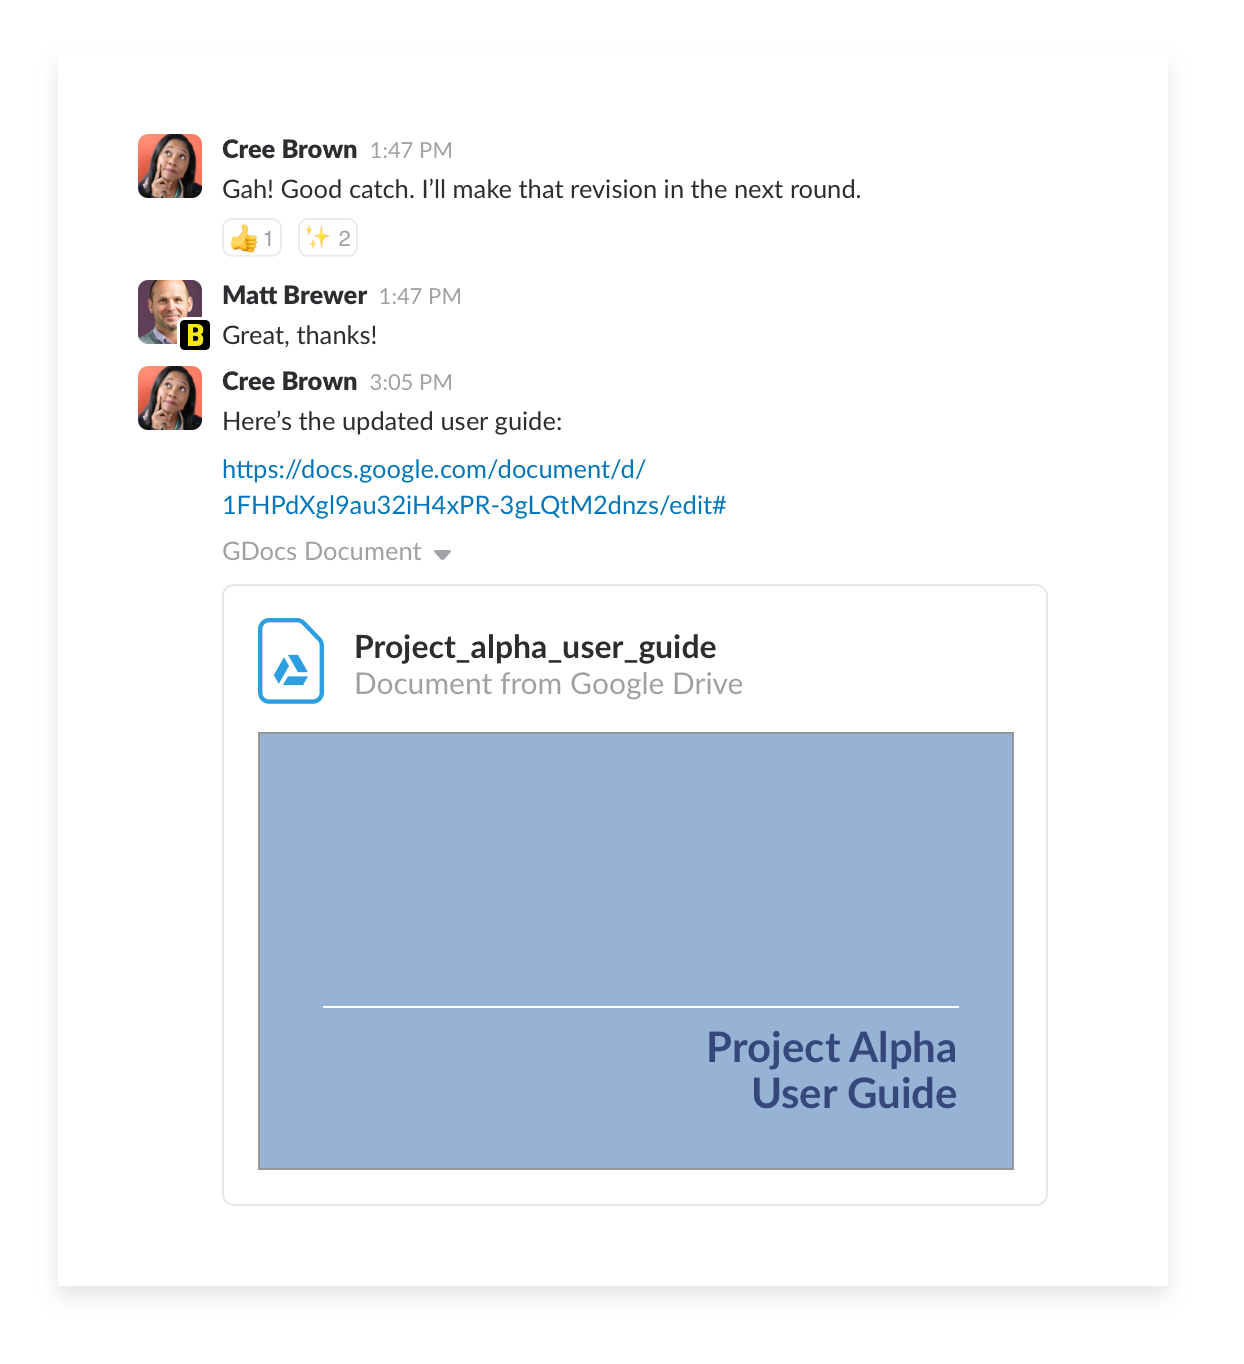 reviewing project documents with external partners in slack